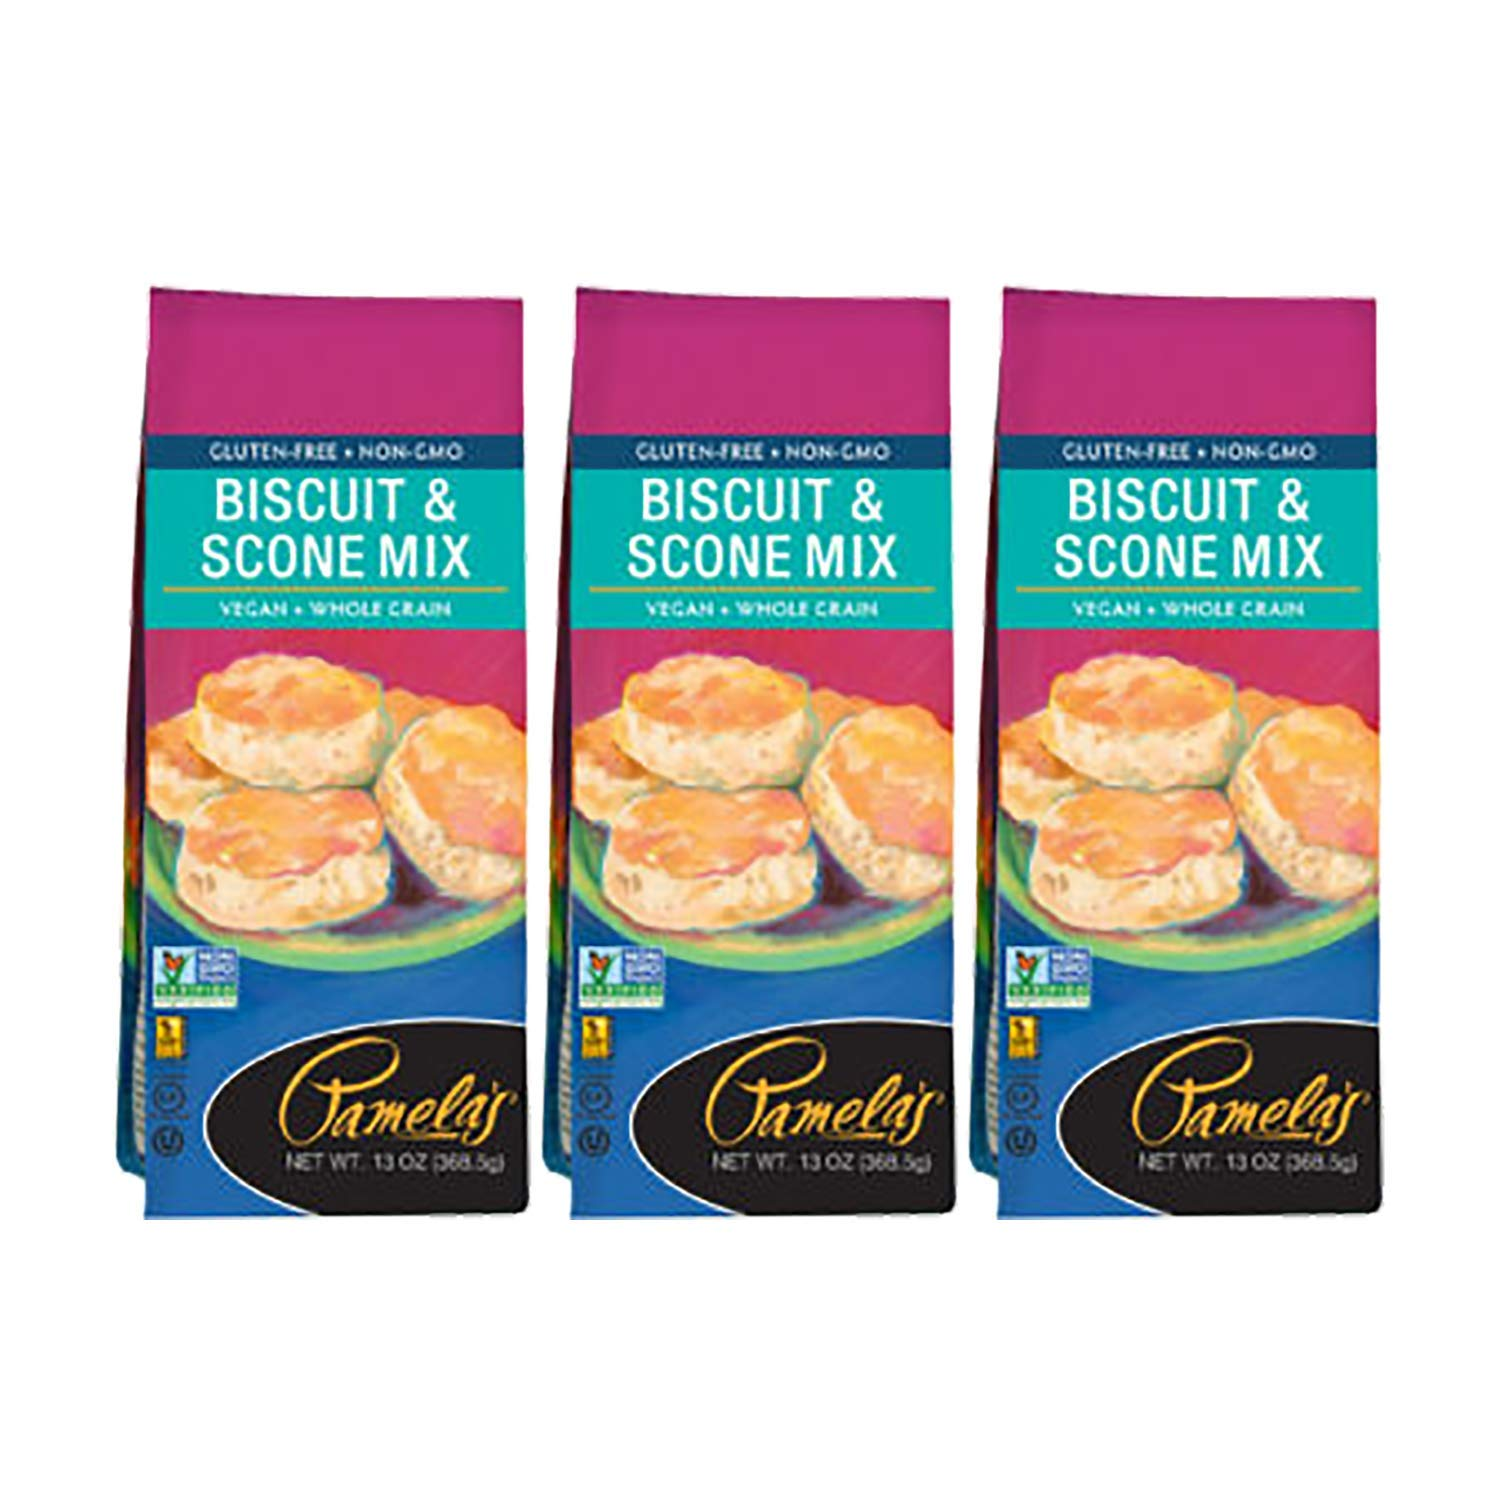 Pamela's Products Gluten Free Biscuit & Scone Mix, 13 ounce,(Pack - 3)